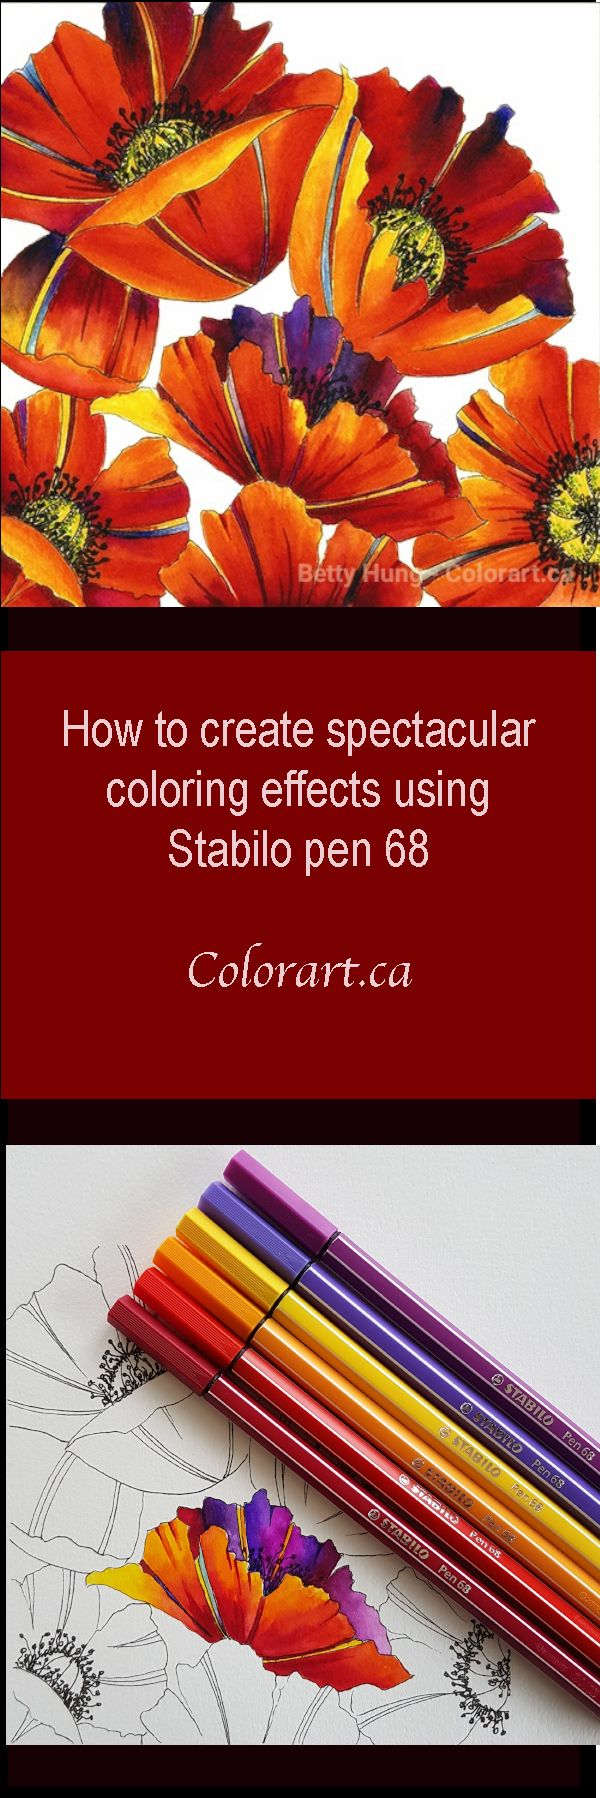 Visit colorart.ca to learn how to create spectacular colors using Stabilo pen 68